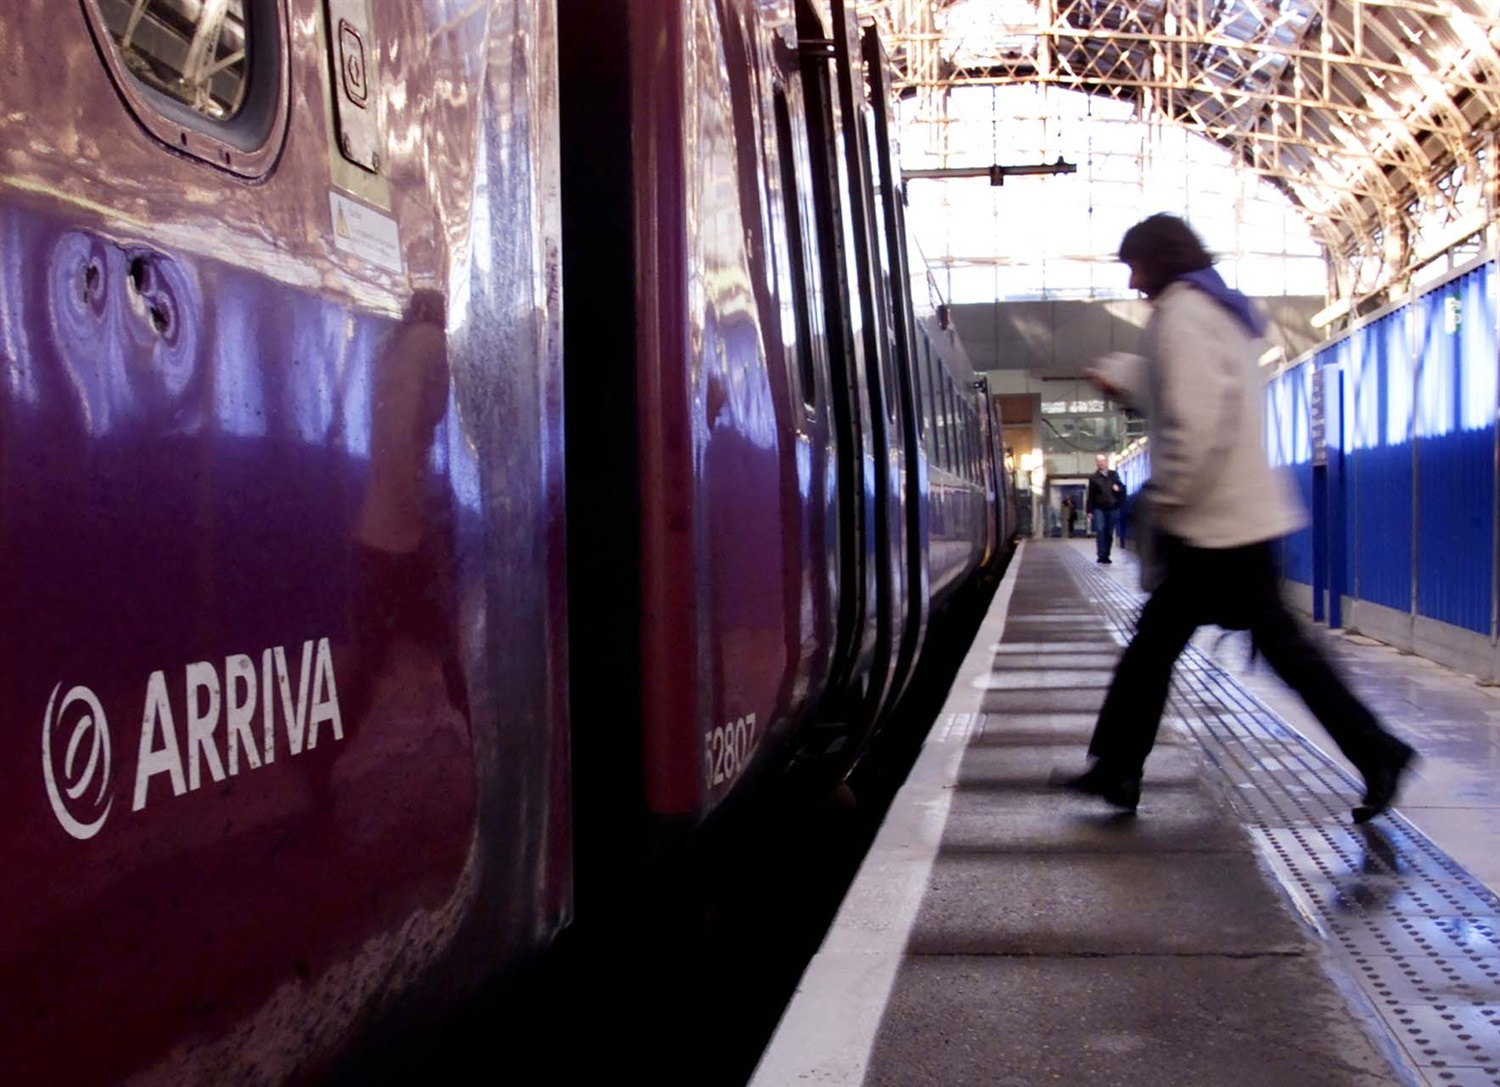 Arriva integration with Northern to face in-depth competition investigation